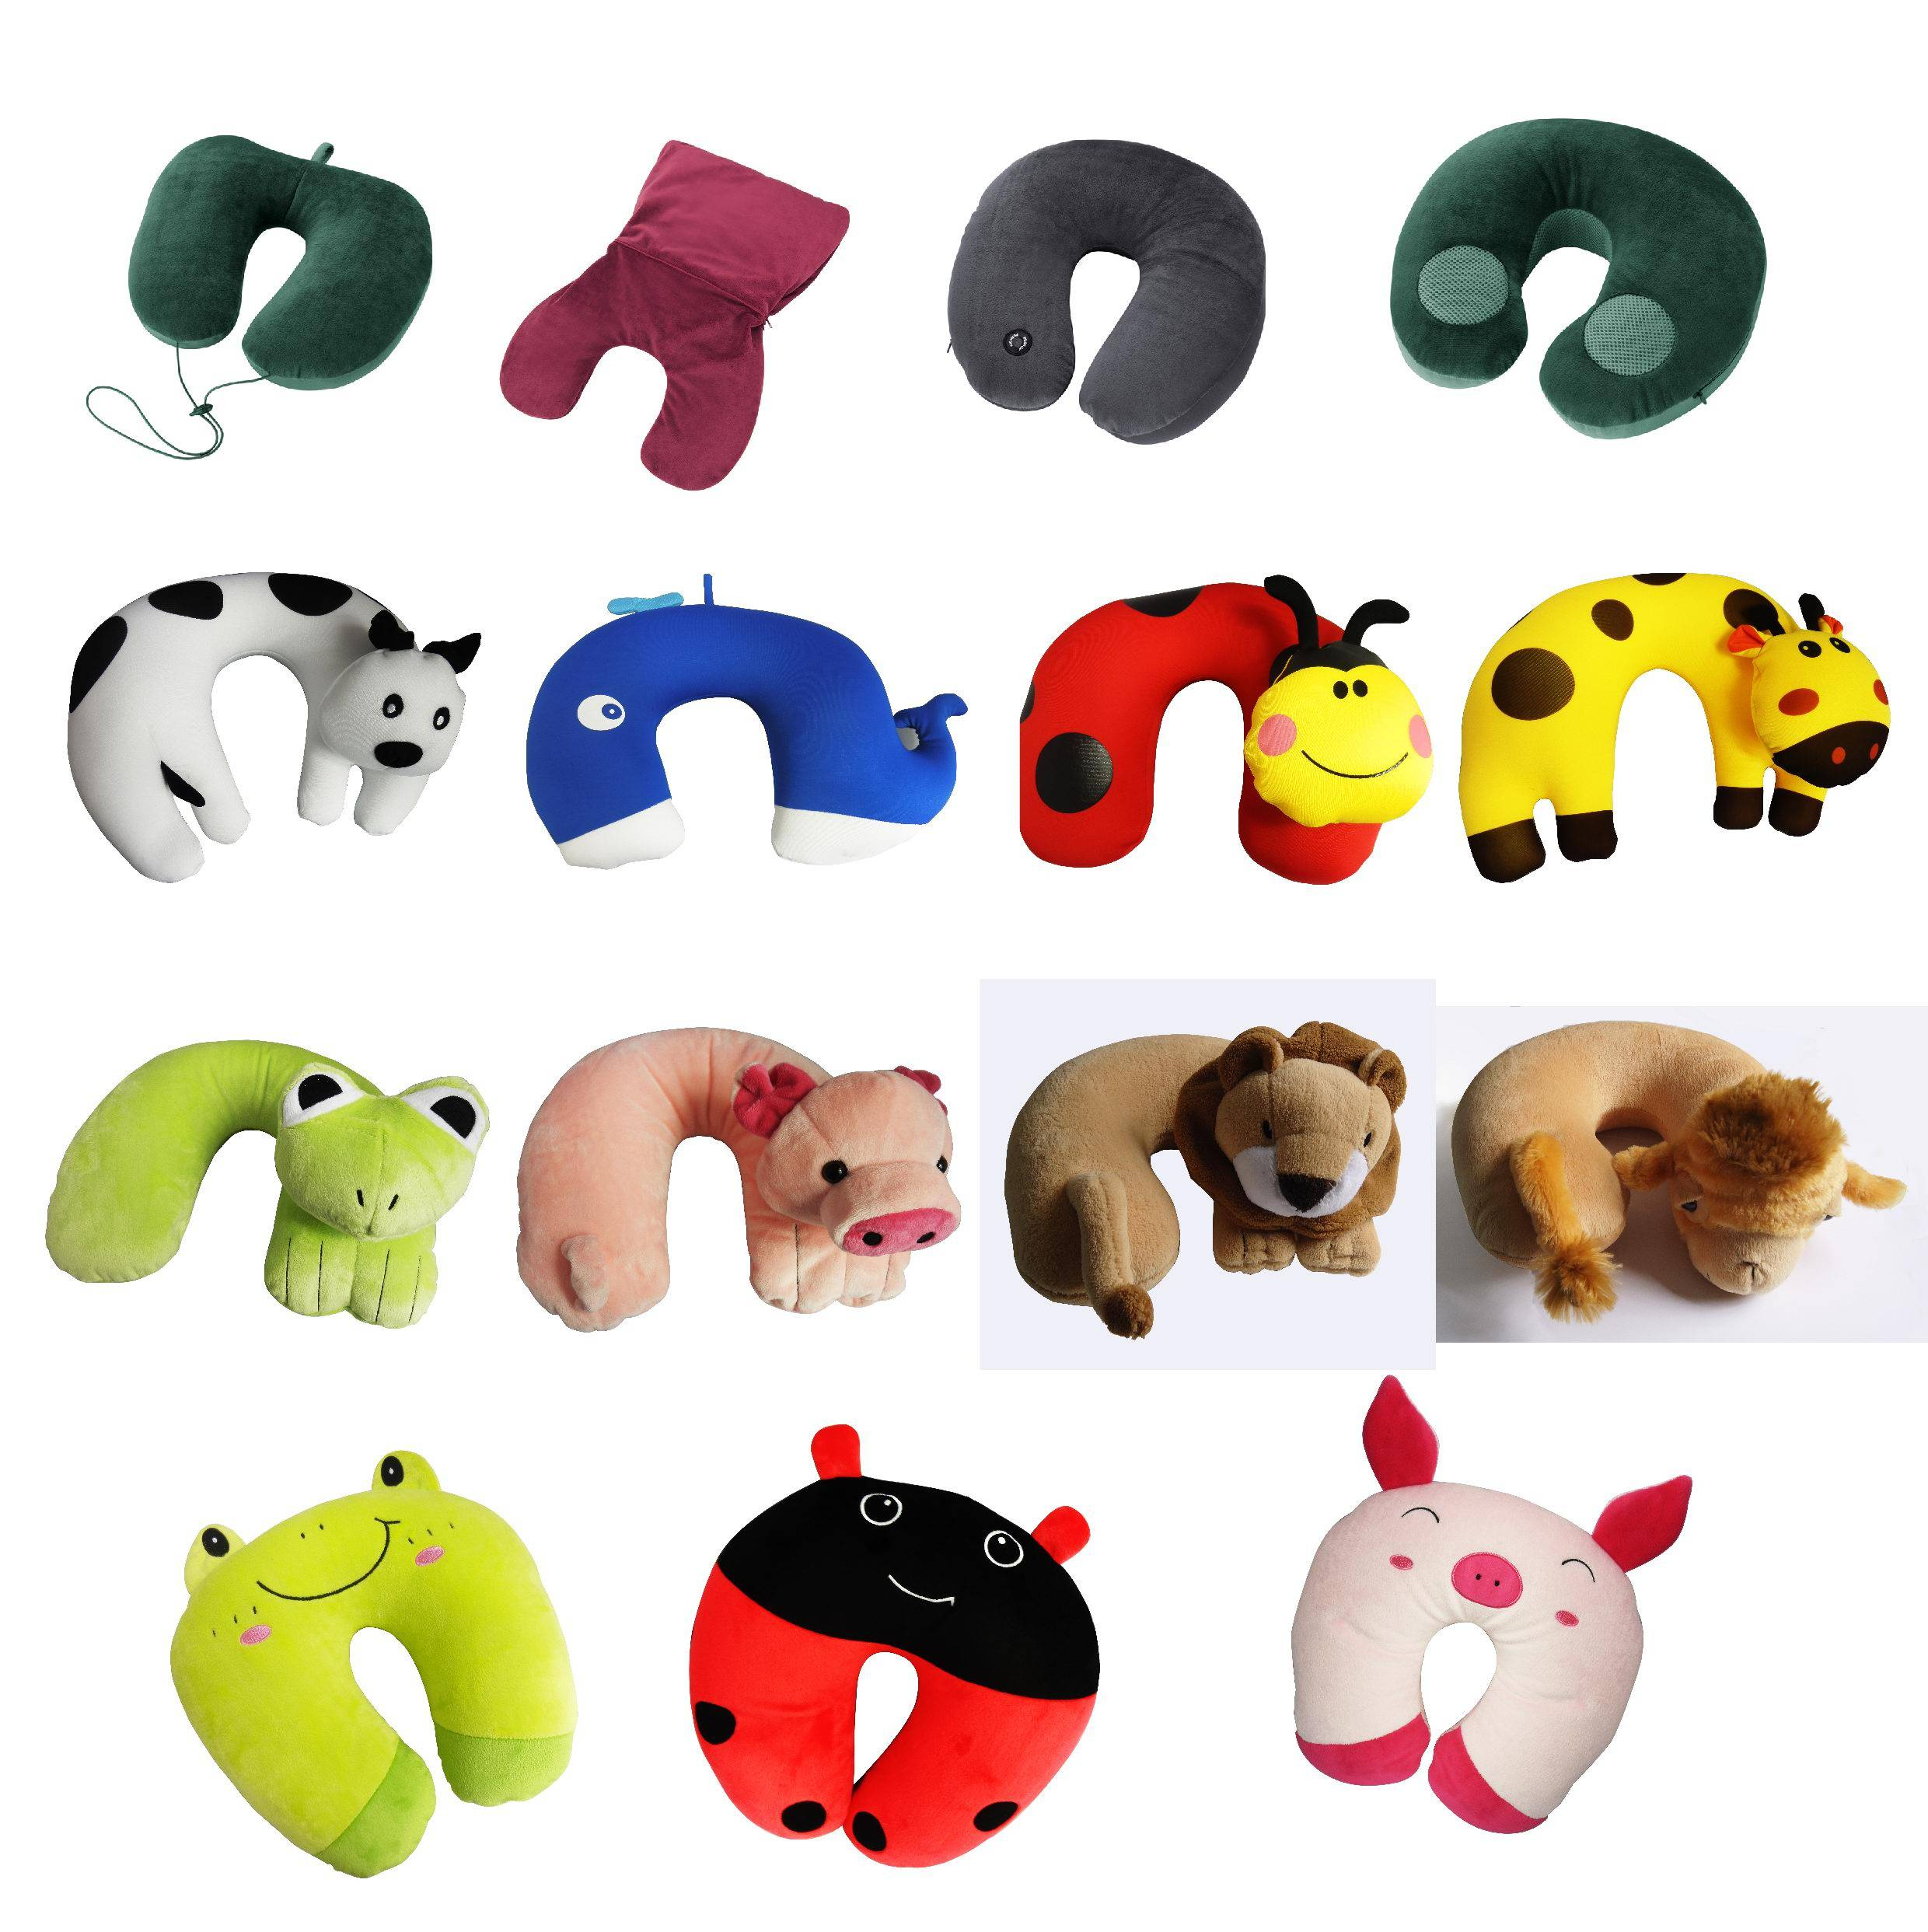 Animal Travel Pillow : Micro-beads Travel Pillow Animal Travel Pillow - Travelwind CO.,LTD. - ecplaza.net